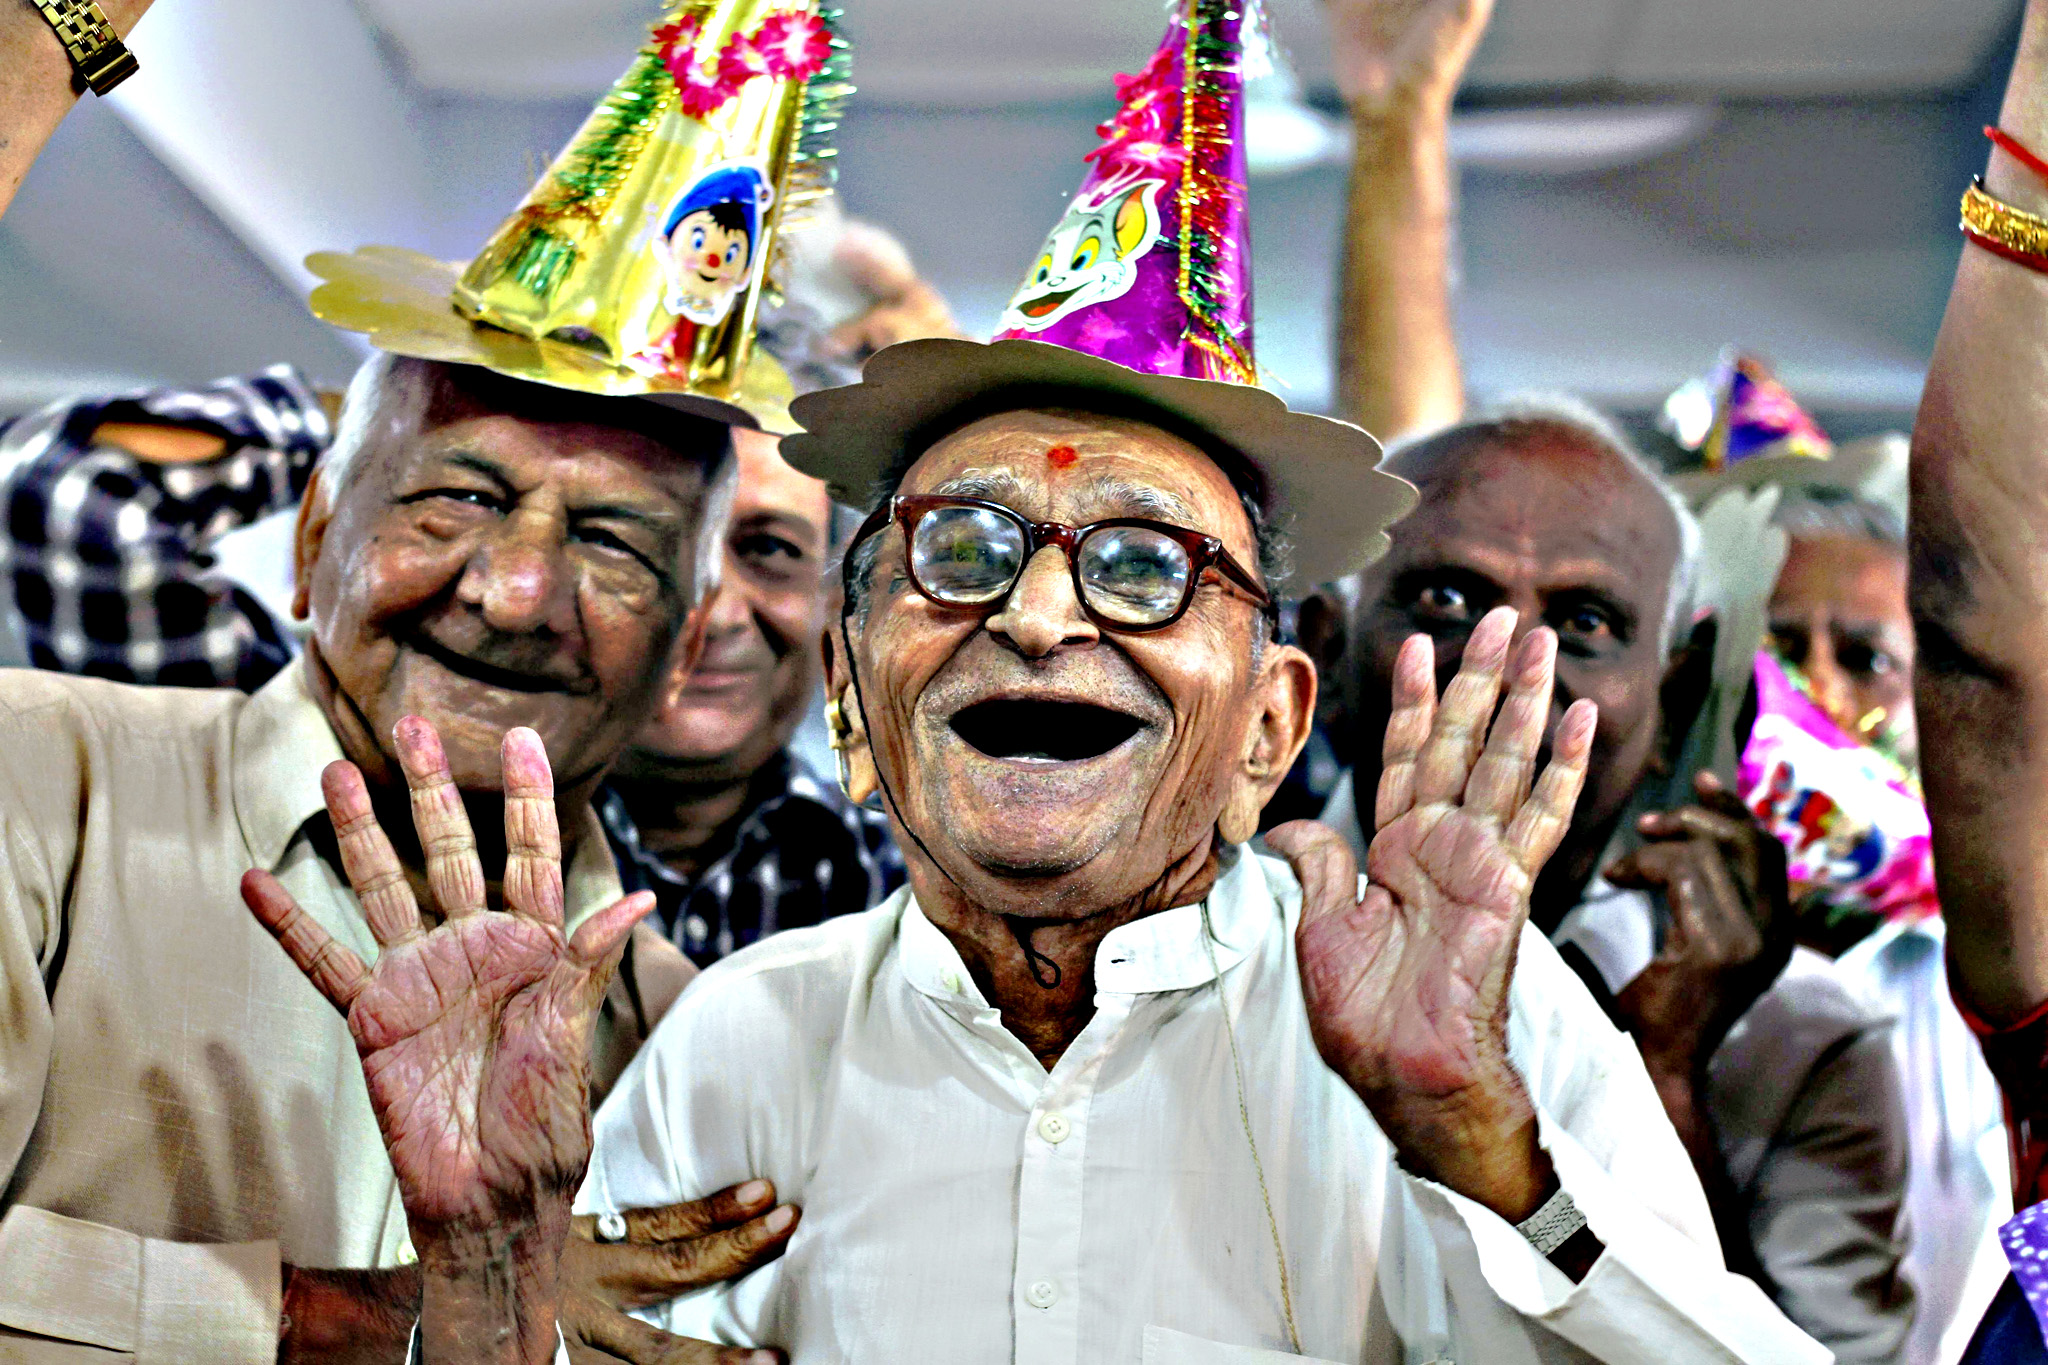 Elderly Indians participate in celebrations to mark International Day of Older Persons at an old age home in Ahmadabad, India, Tuesday, Oct. 1, 2013. Much of the world is not prepared to support the ballooning population of elderly people, including many of the fastest-aging countries, according to a global study scheduled to be released Tuesday, Oct. 1, by the United Nations and an elder rights group.